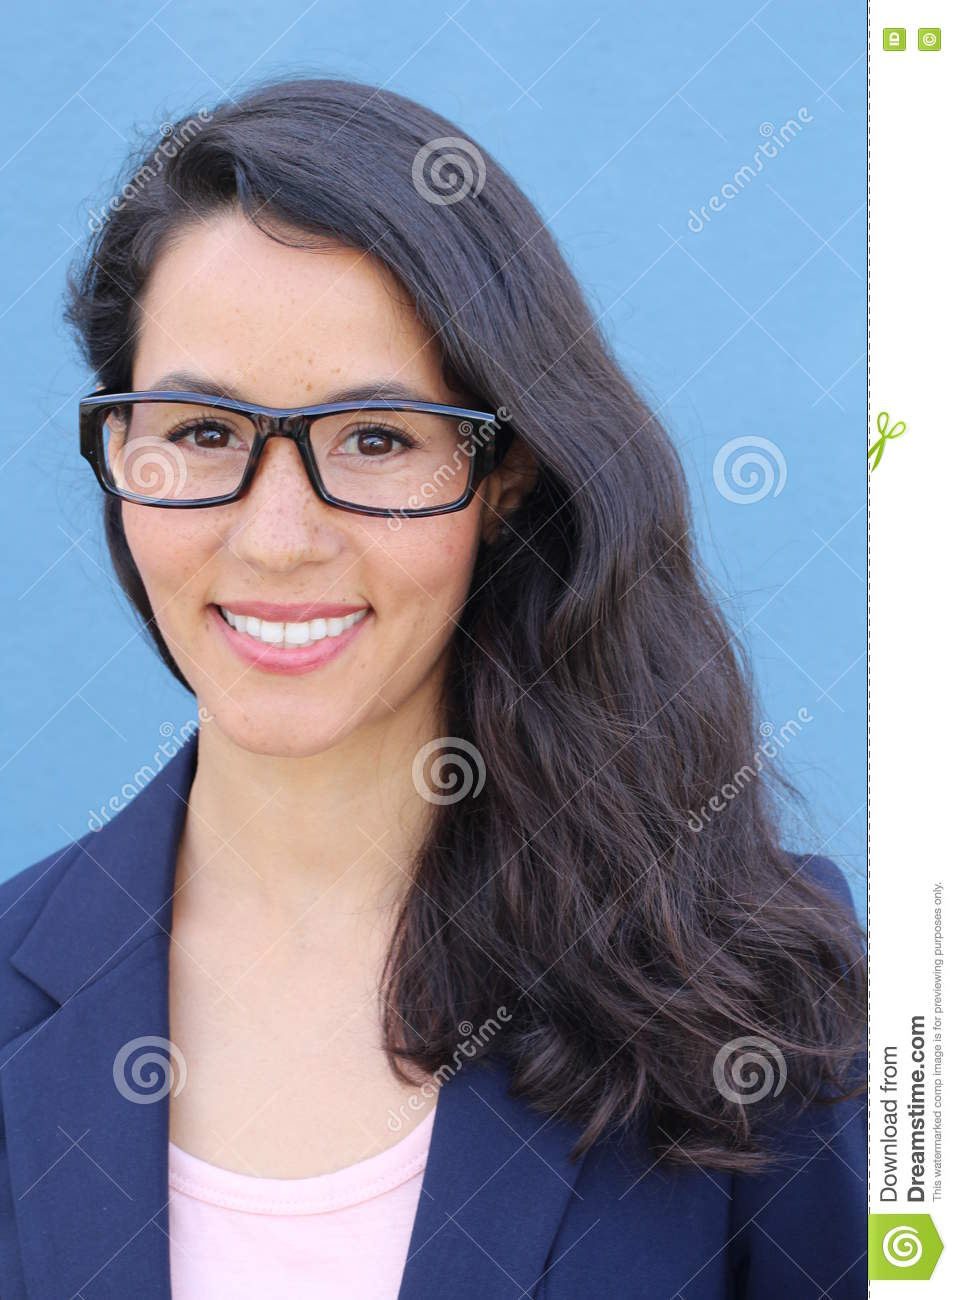 Closeup portrait, young professional, beautiful confident adult woman in blue blasier, with black glasses, smiling isolated indoor